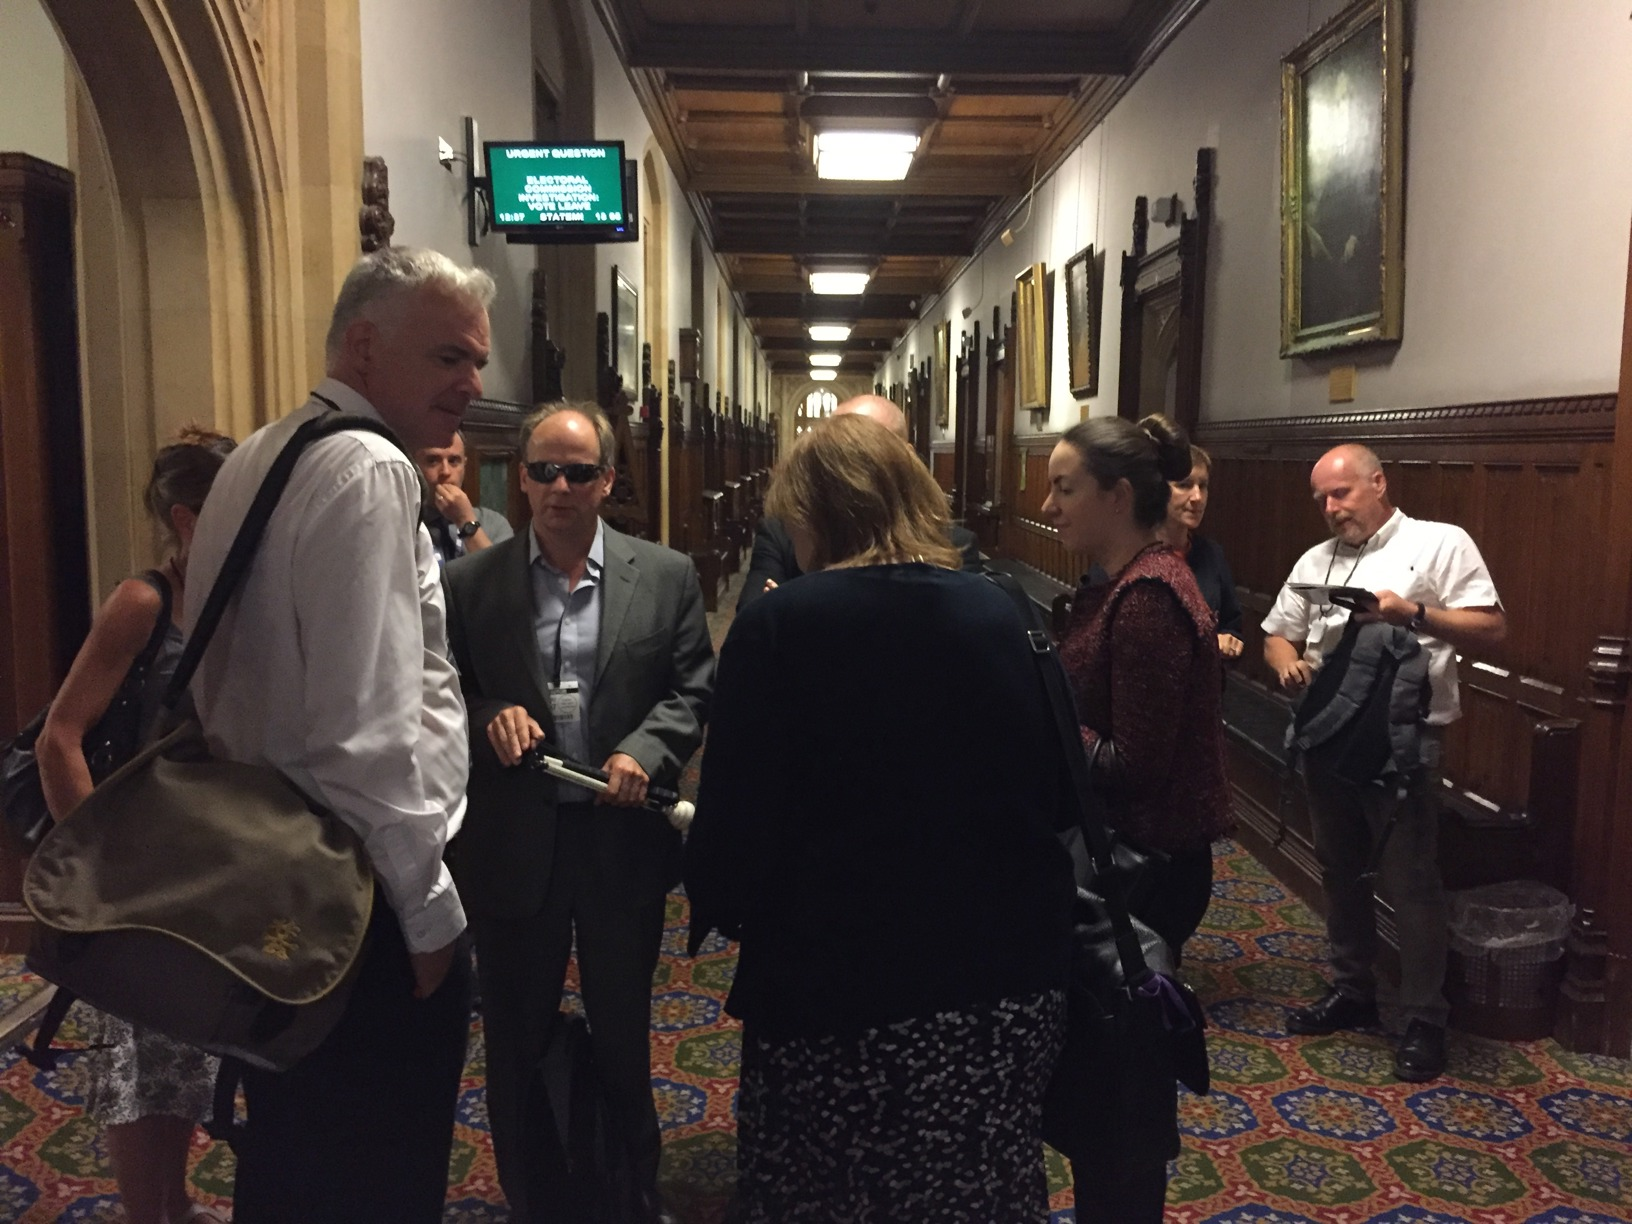 Participants continuing conversations in the corridors after the round table discussion